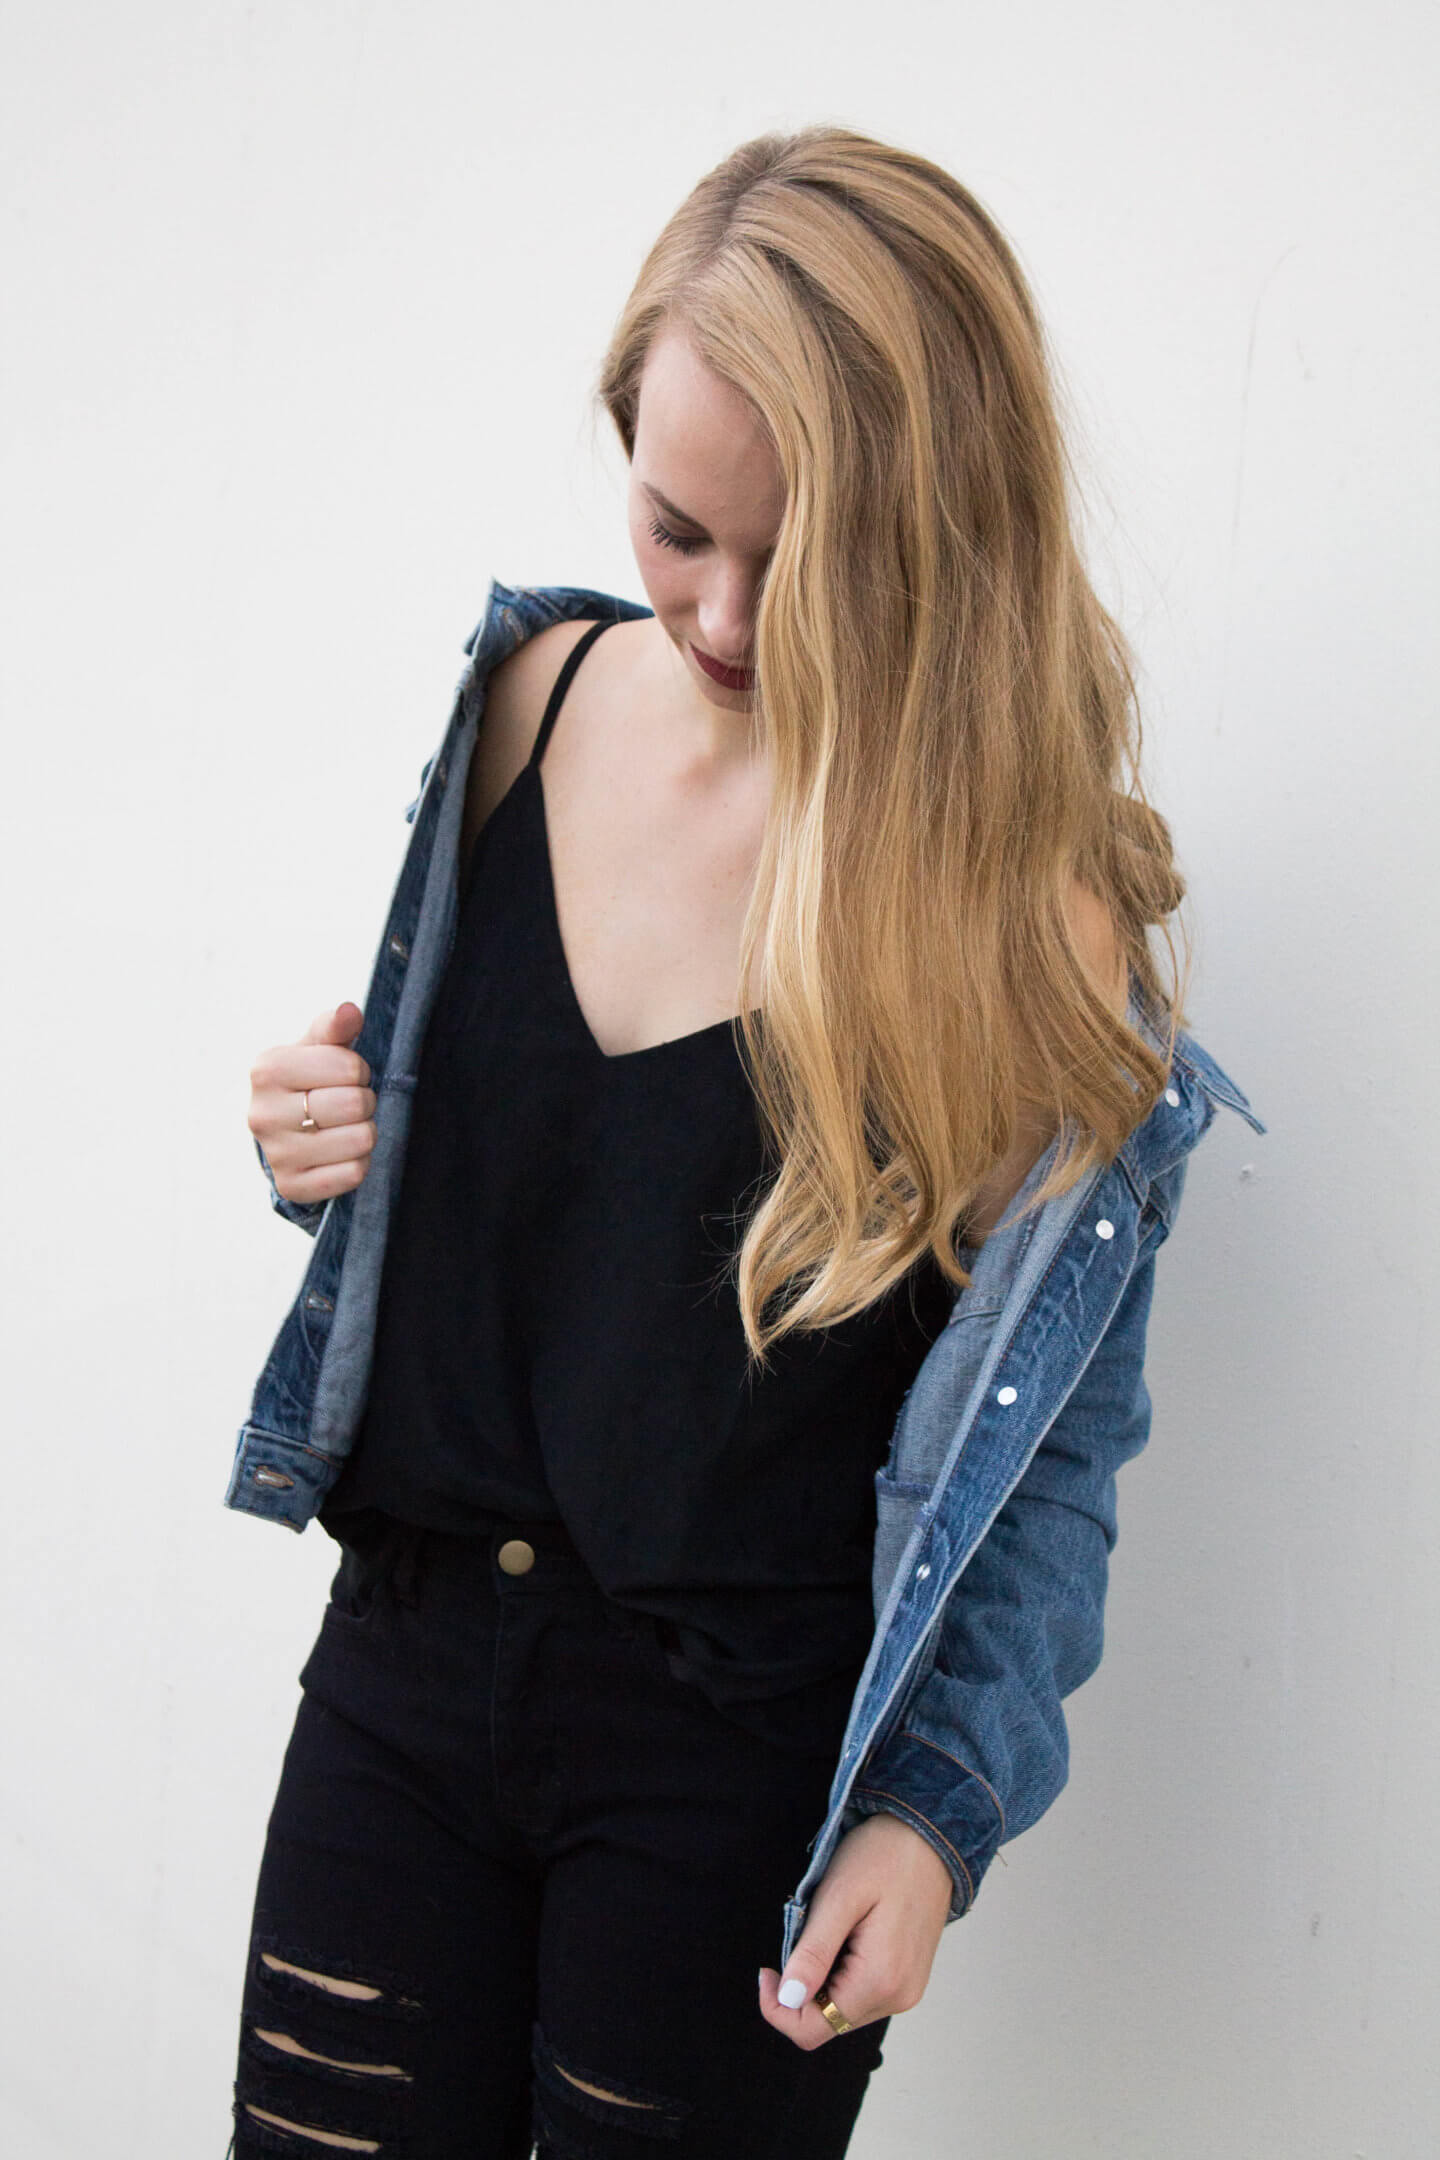 All black look for a fun day to night transition. I think every girl needs a go-to day to night look they can grab and go | The Blonder Life